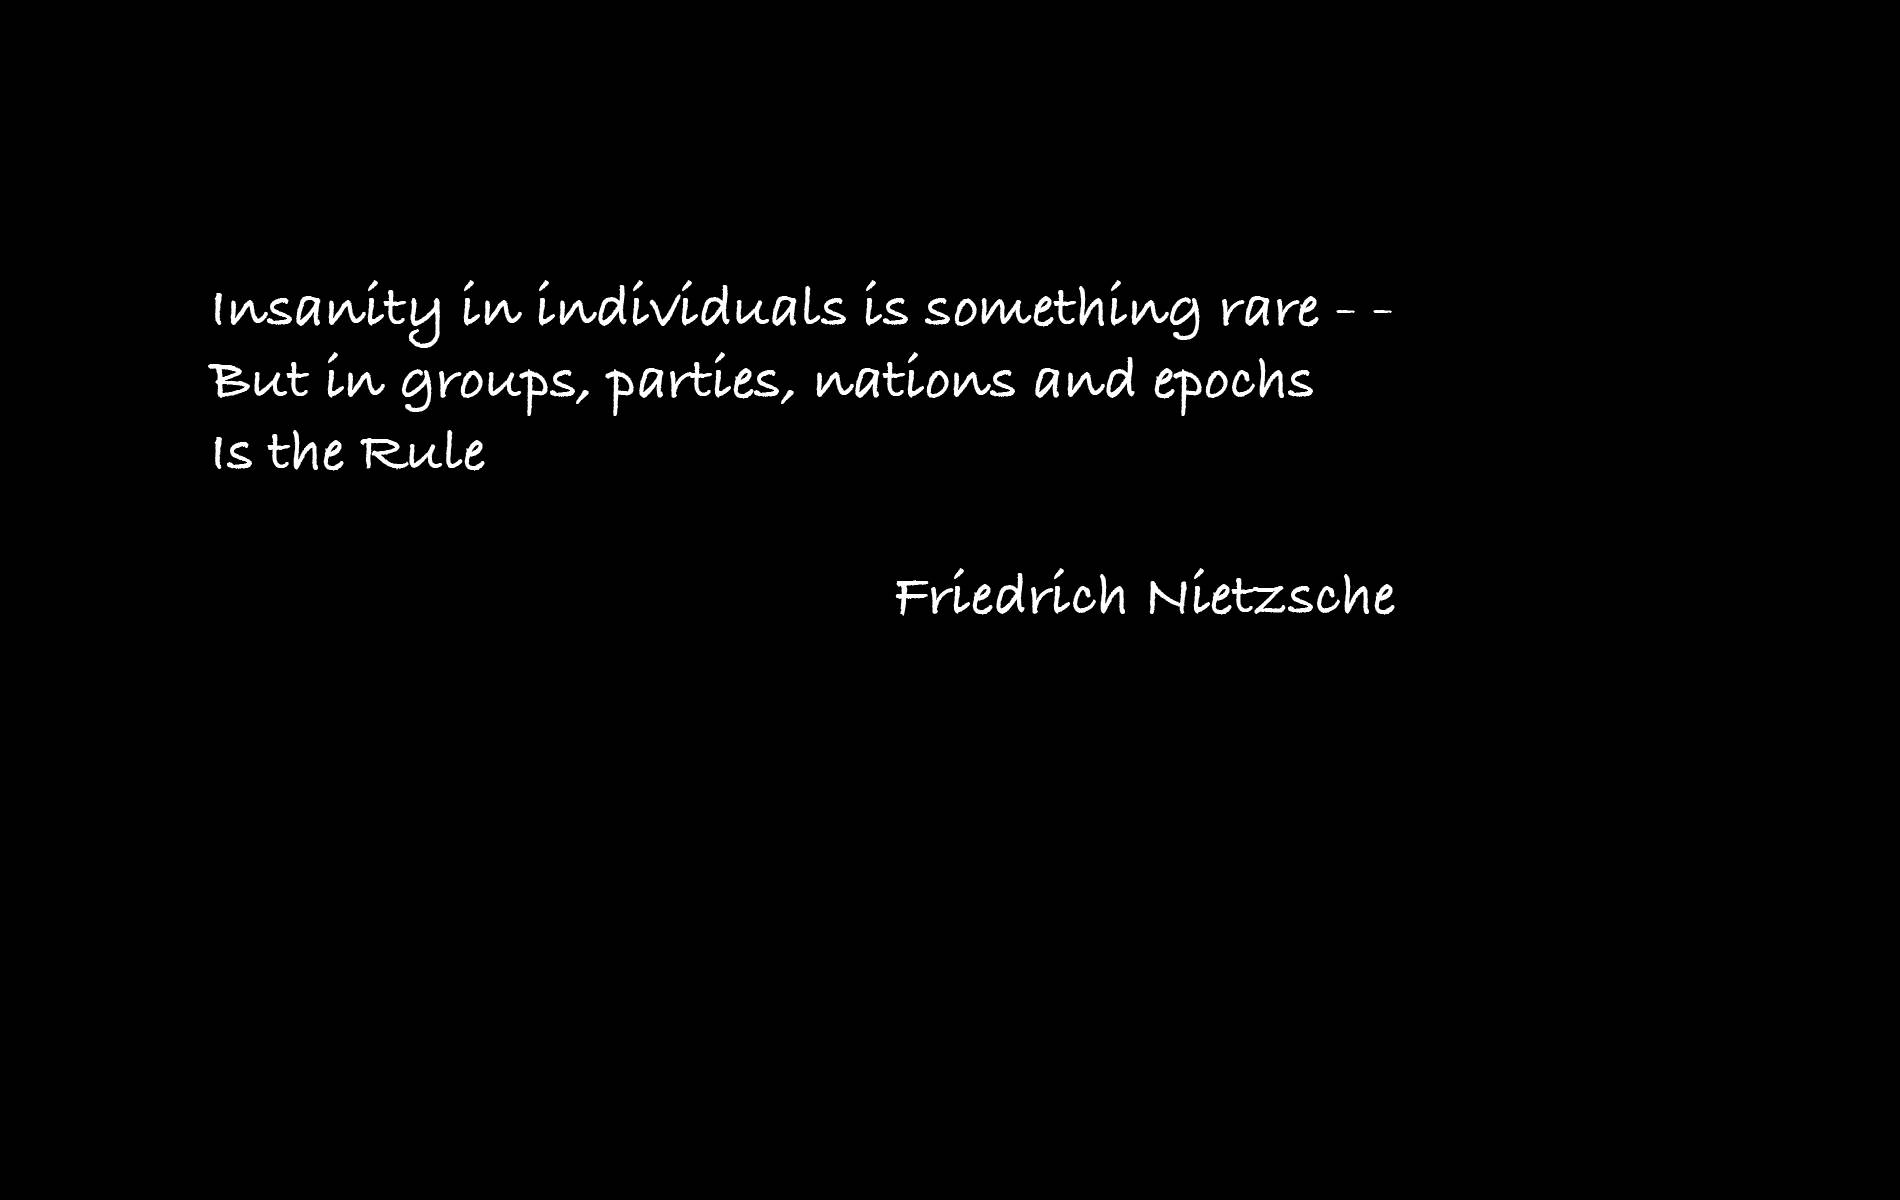 nietzsche and gandhi society